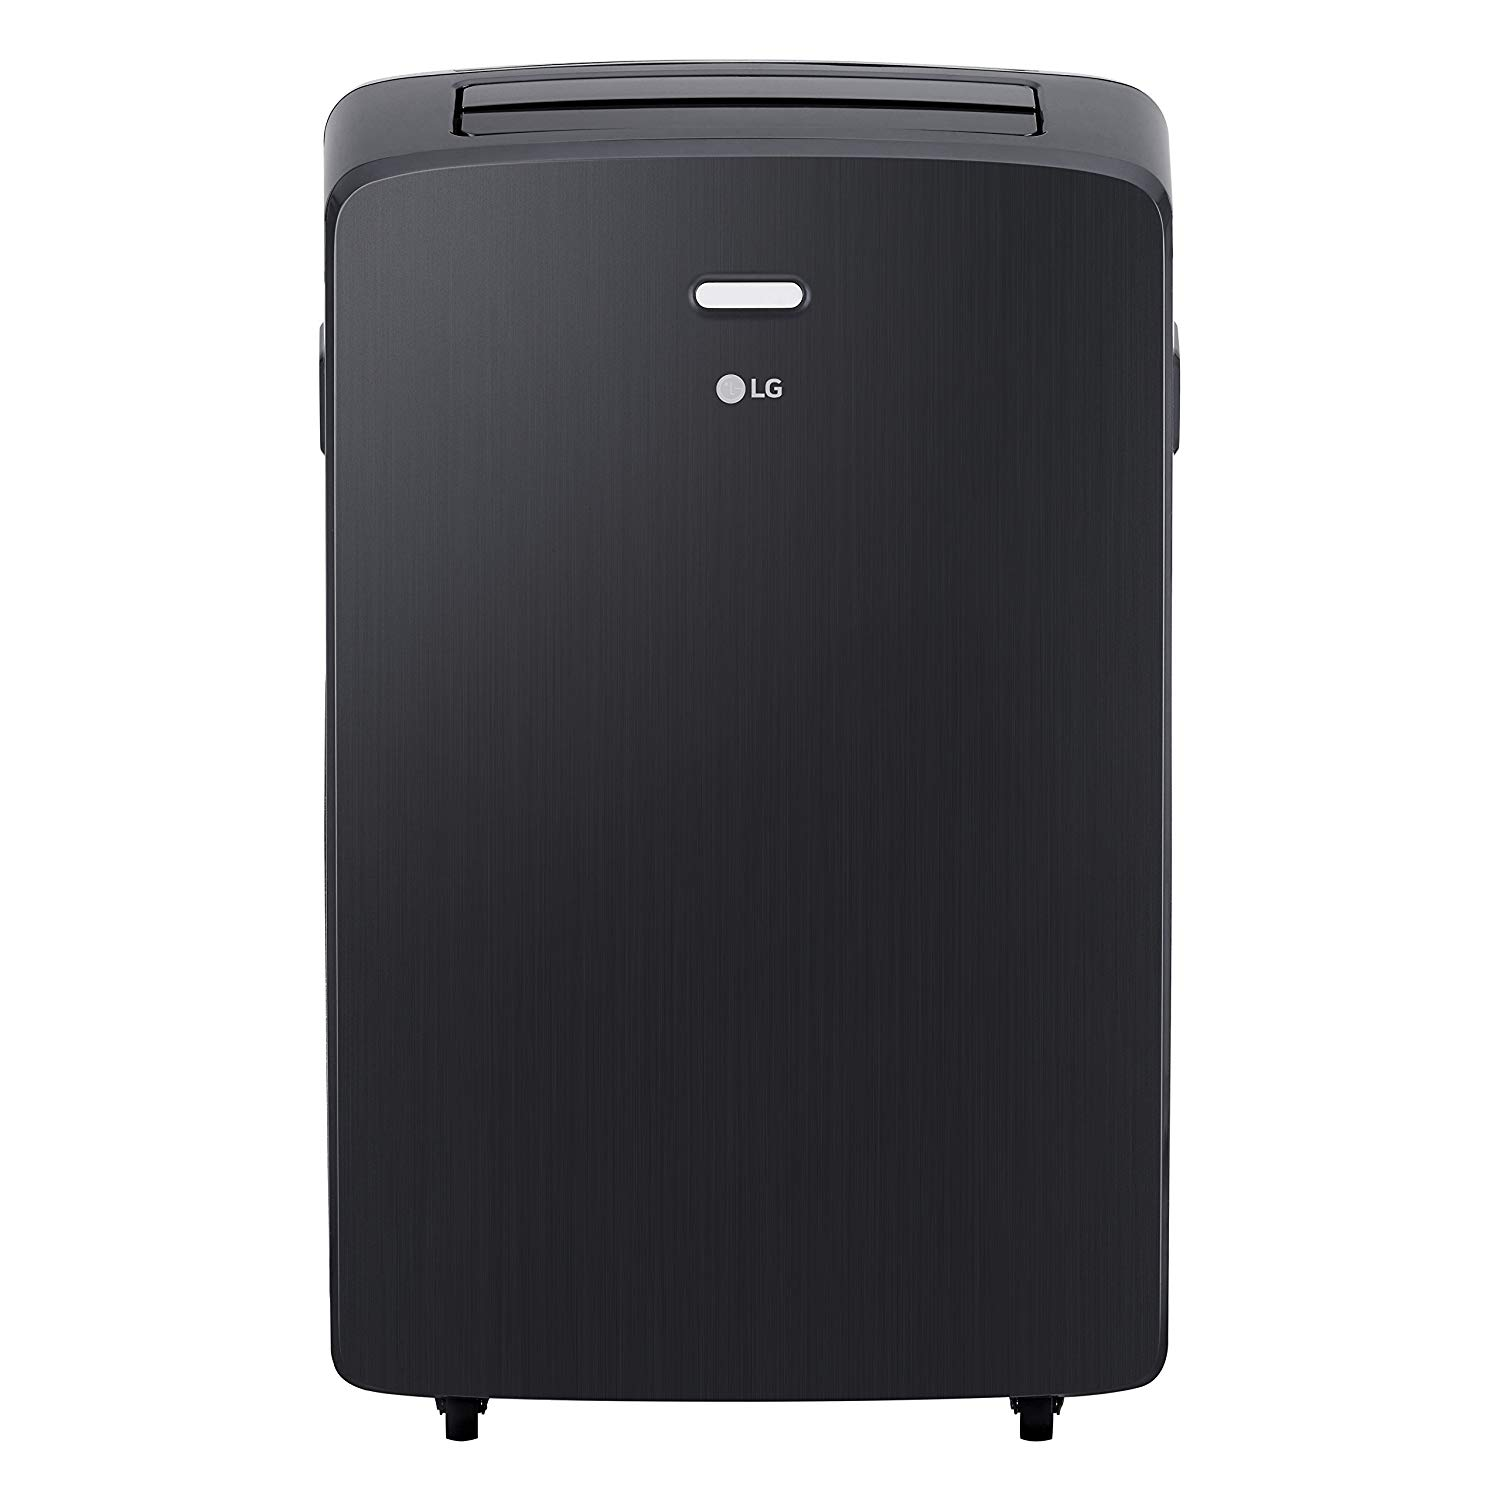 LG 115V Portable Air Conditioner, LP1217GSR